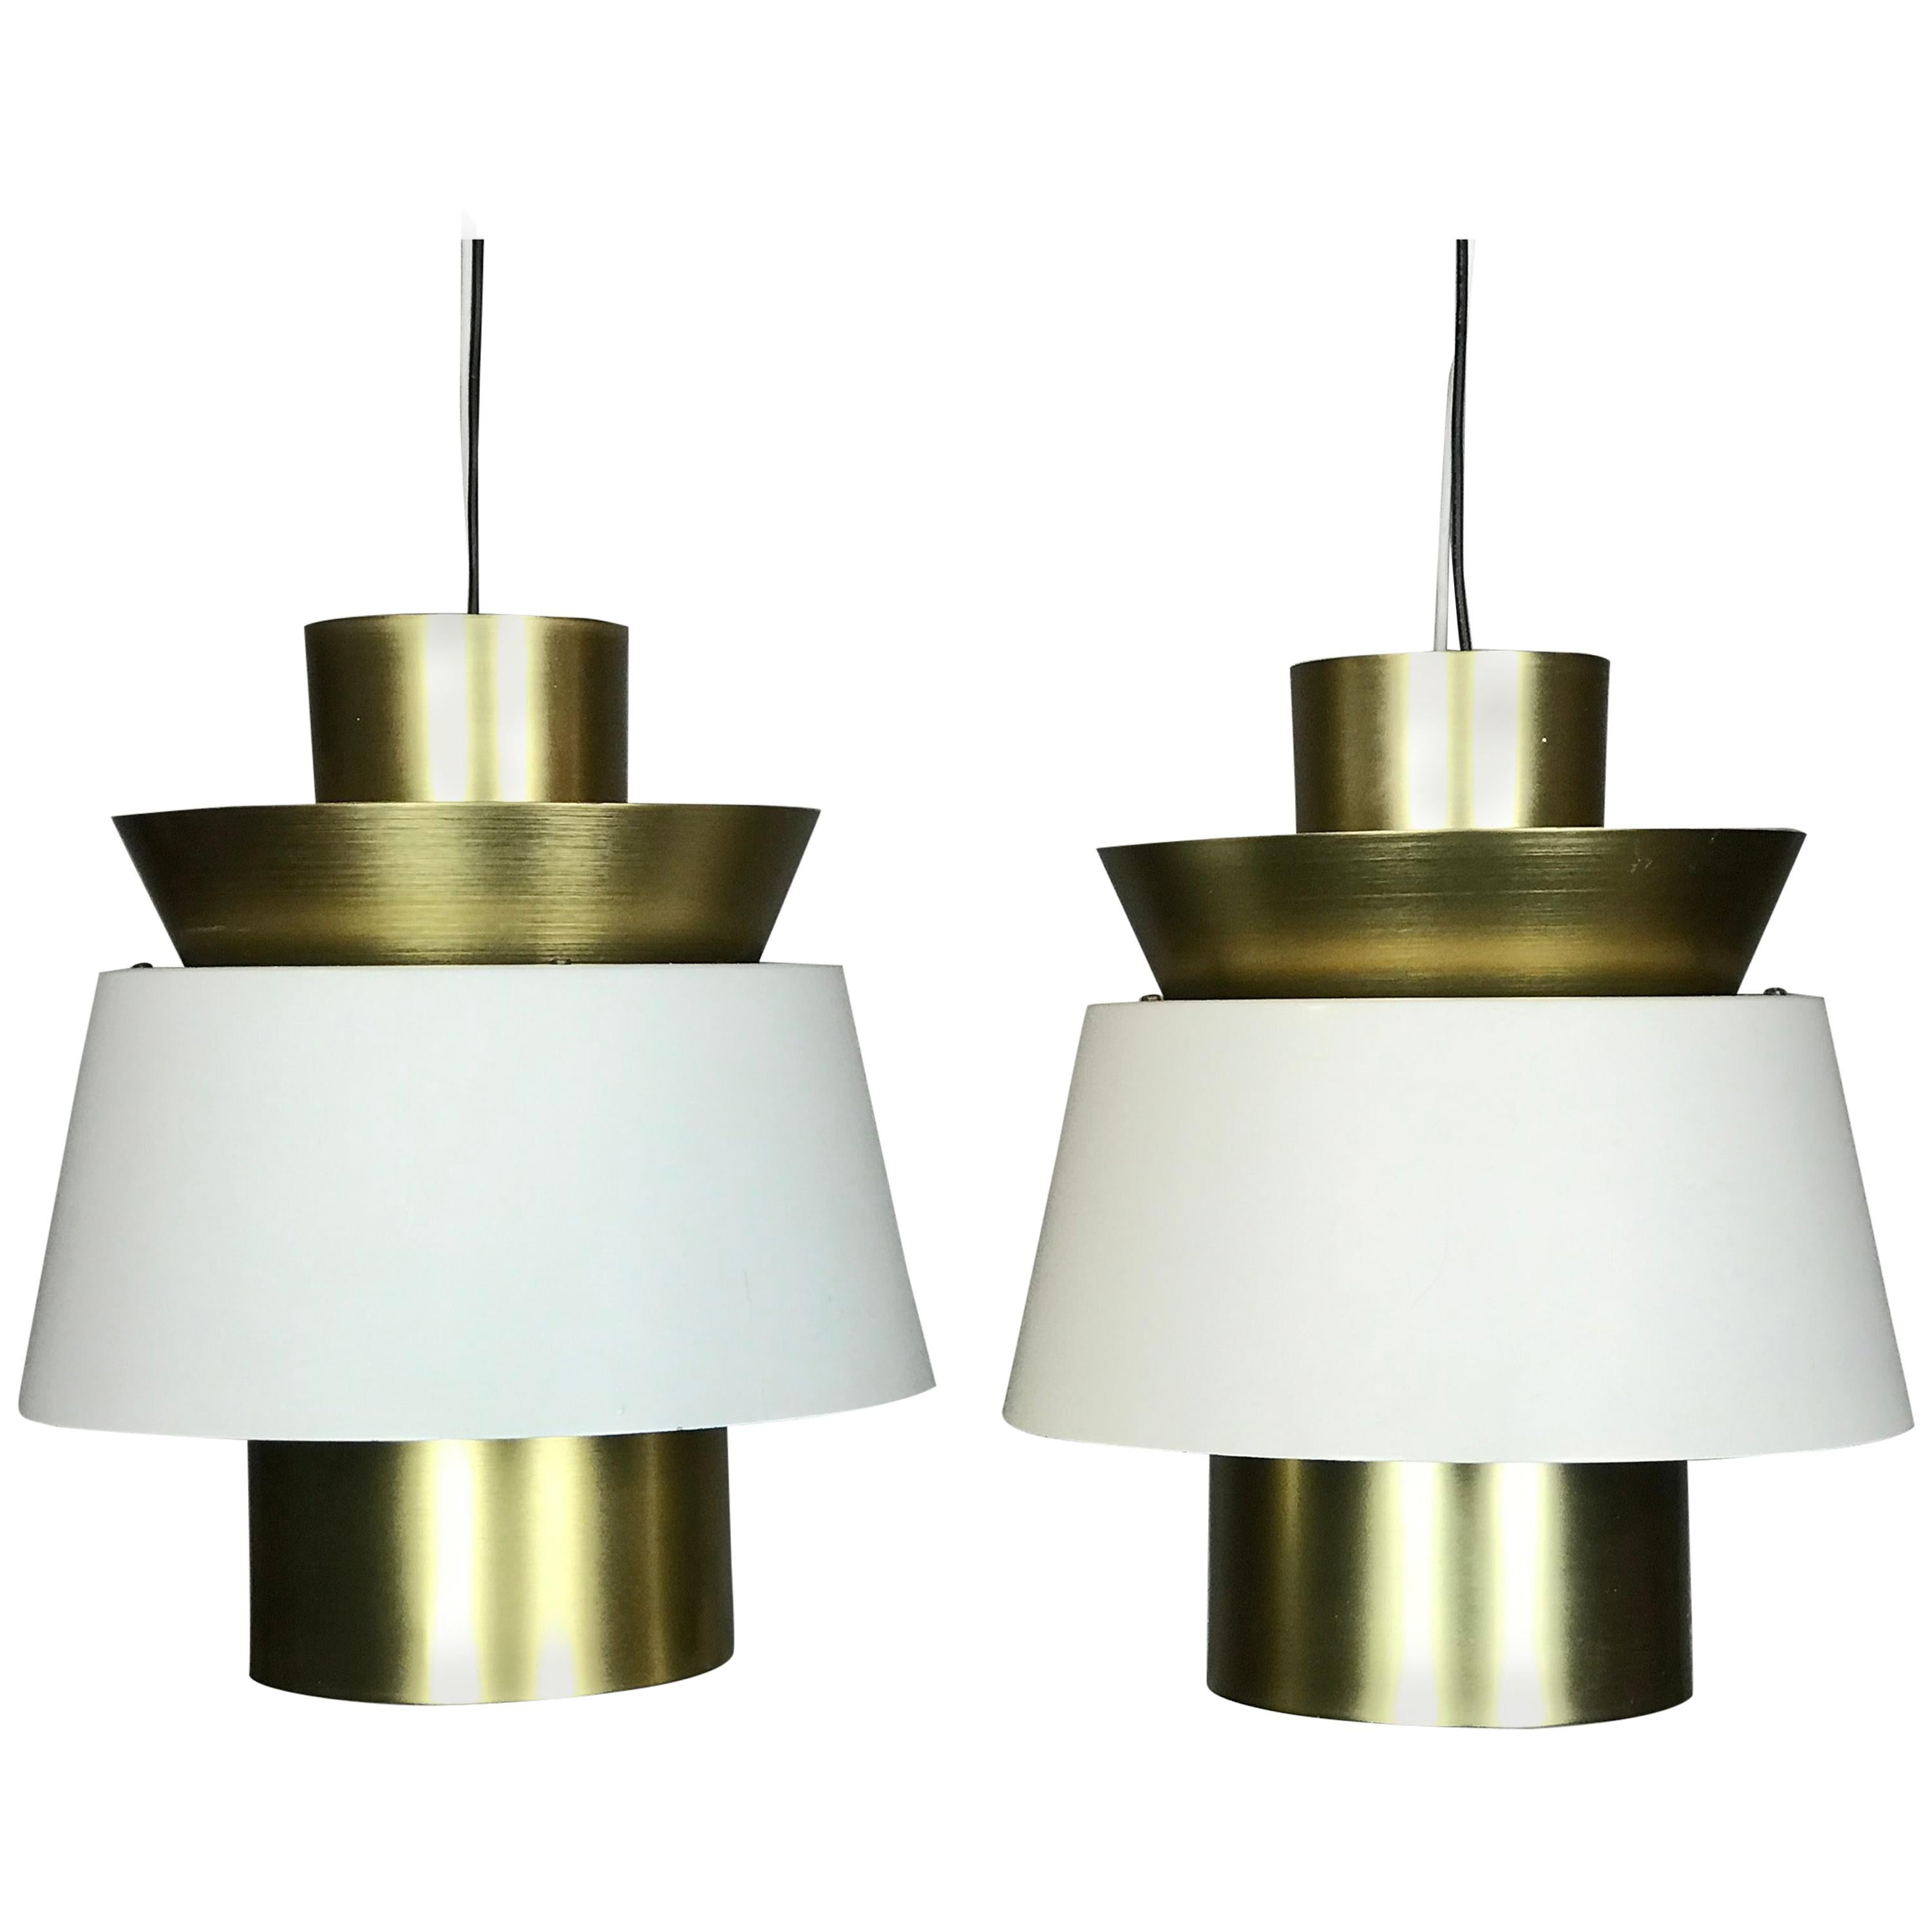 Pendant Lamps in Brass and Painted Metal by Jorn Utzon for Nordisk Solar